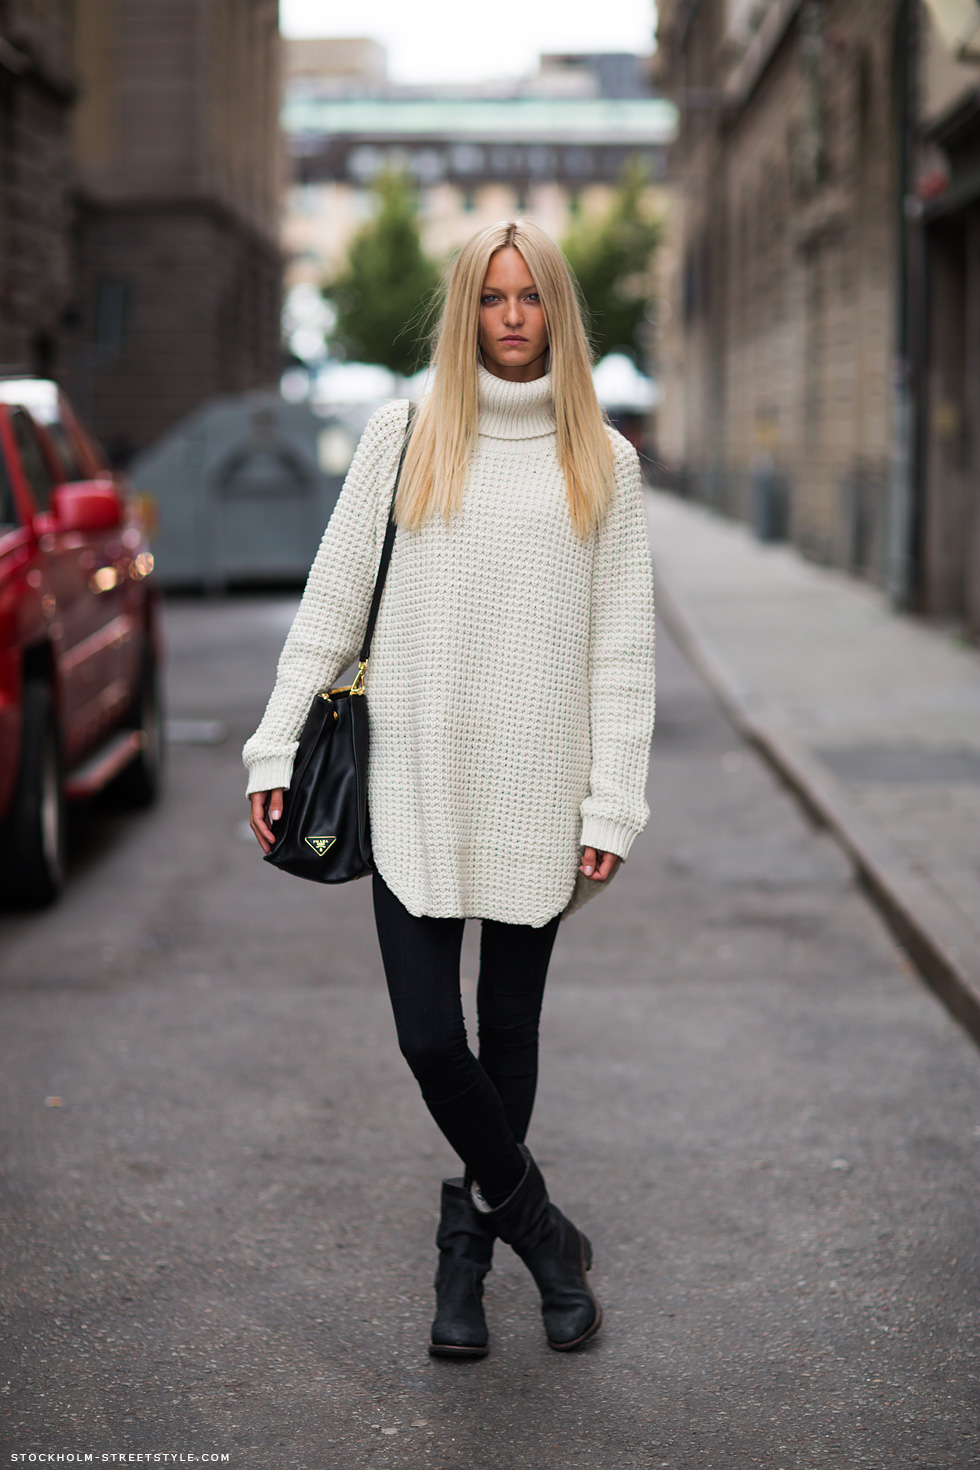 Love The Turtleneck Via Stockholm Street Style